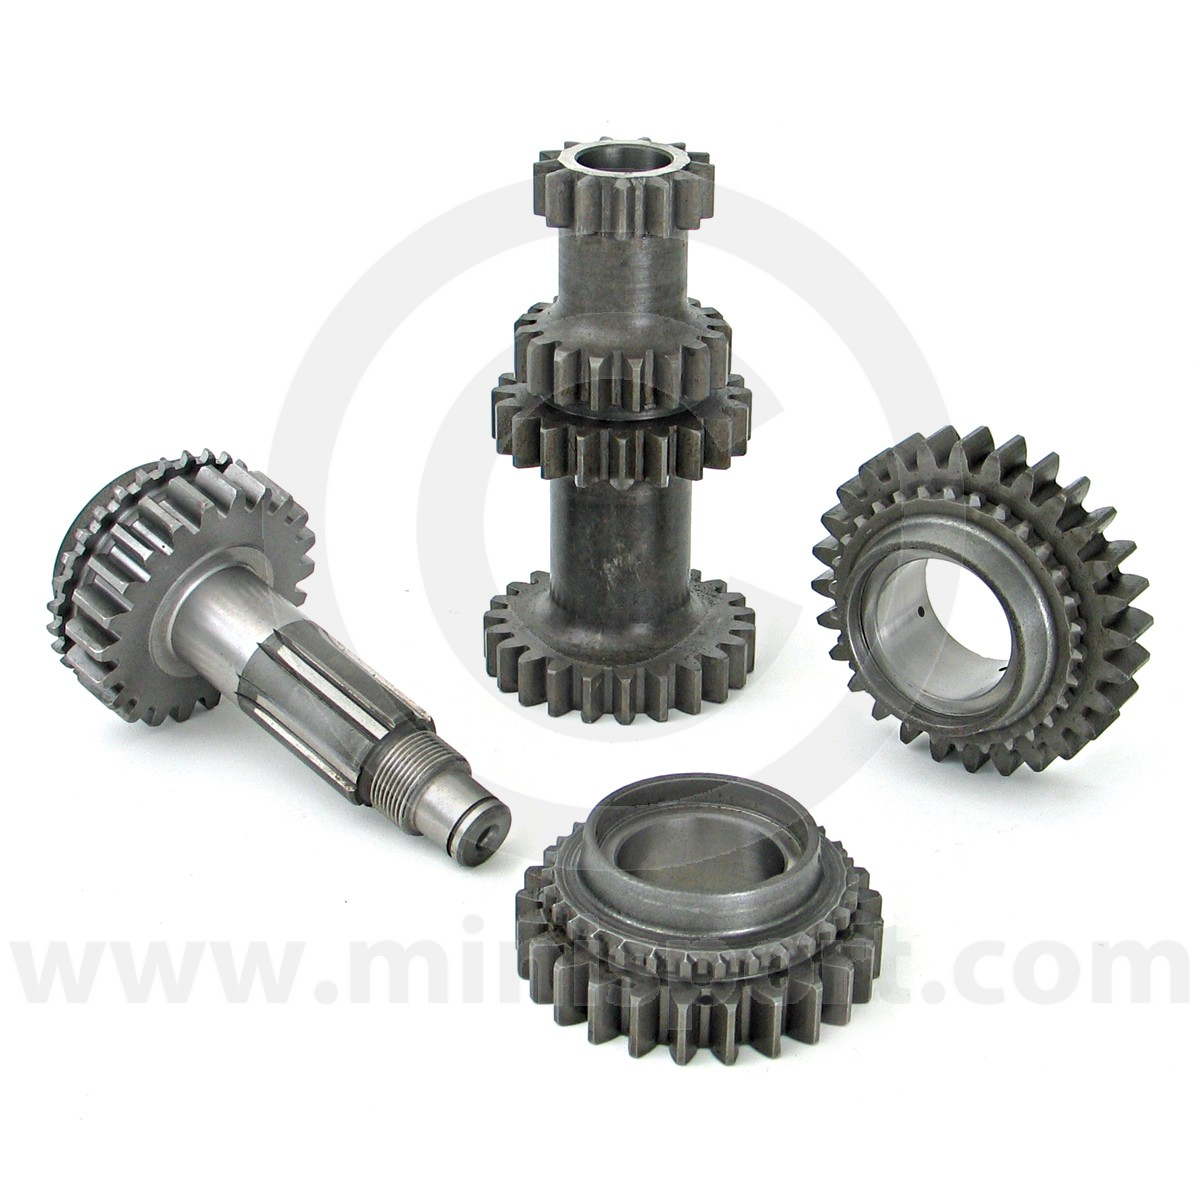 Ms3371 Mini Straight Cut Gear Kit Gearbox Sport 1275 Gt With Alternator And Rocker Type Switches 3 Synchro